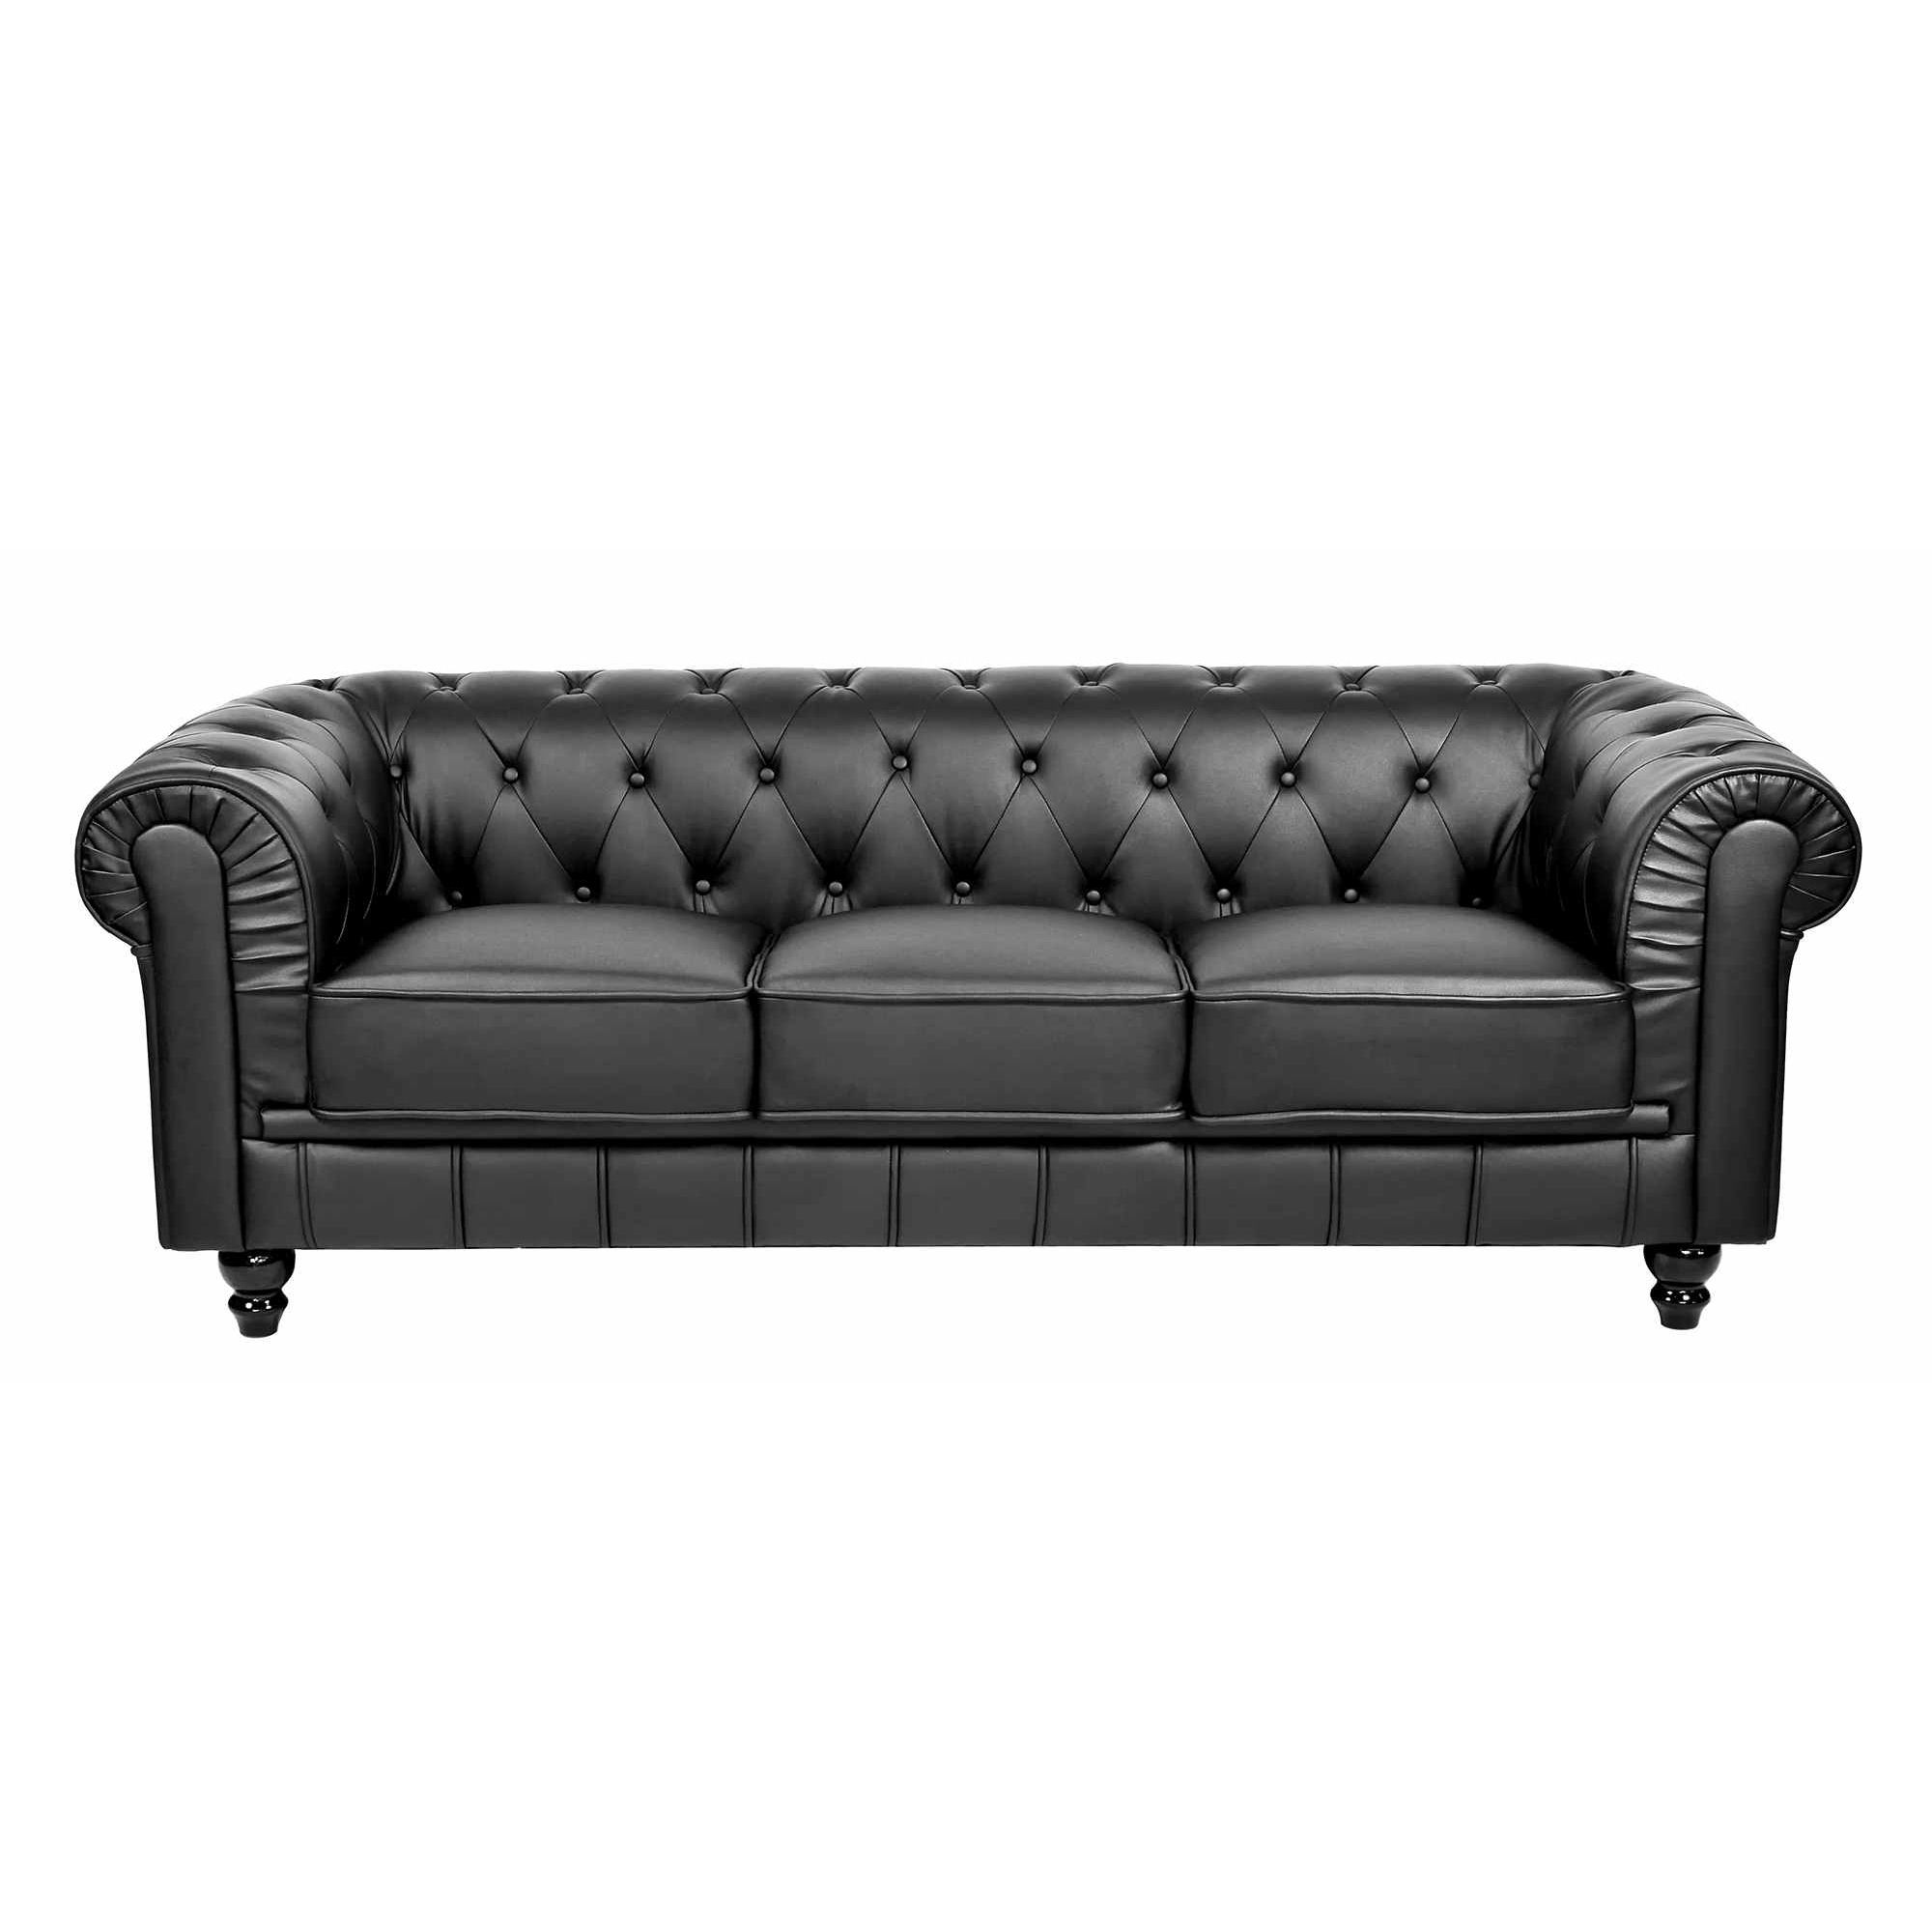 Deco in paris ensemble canape 3 2 1 places noir for Canape chesterfield 2 places